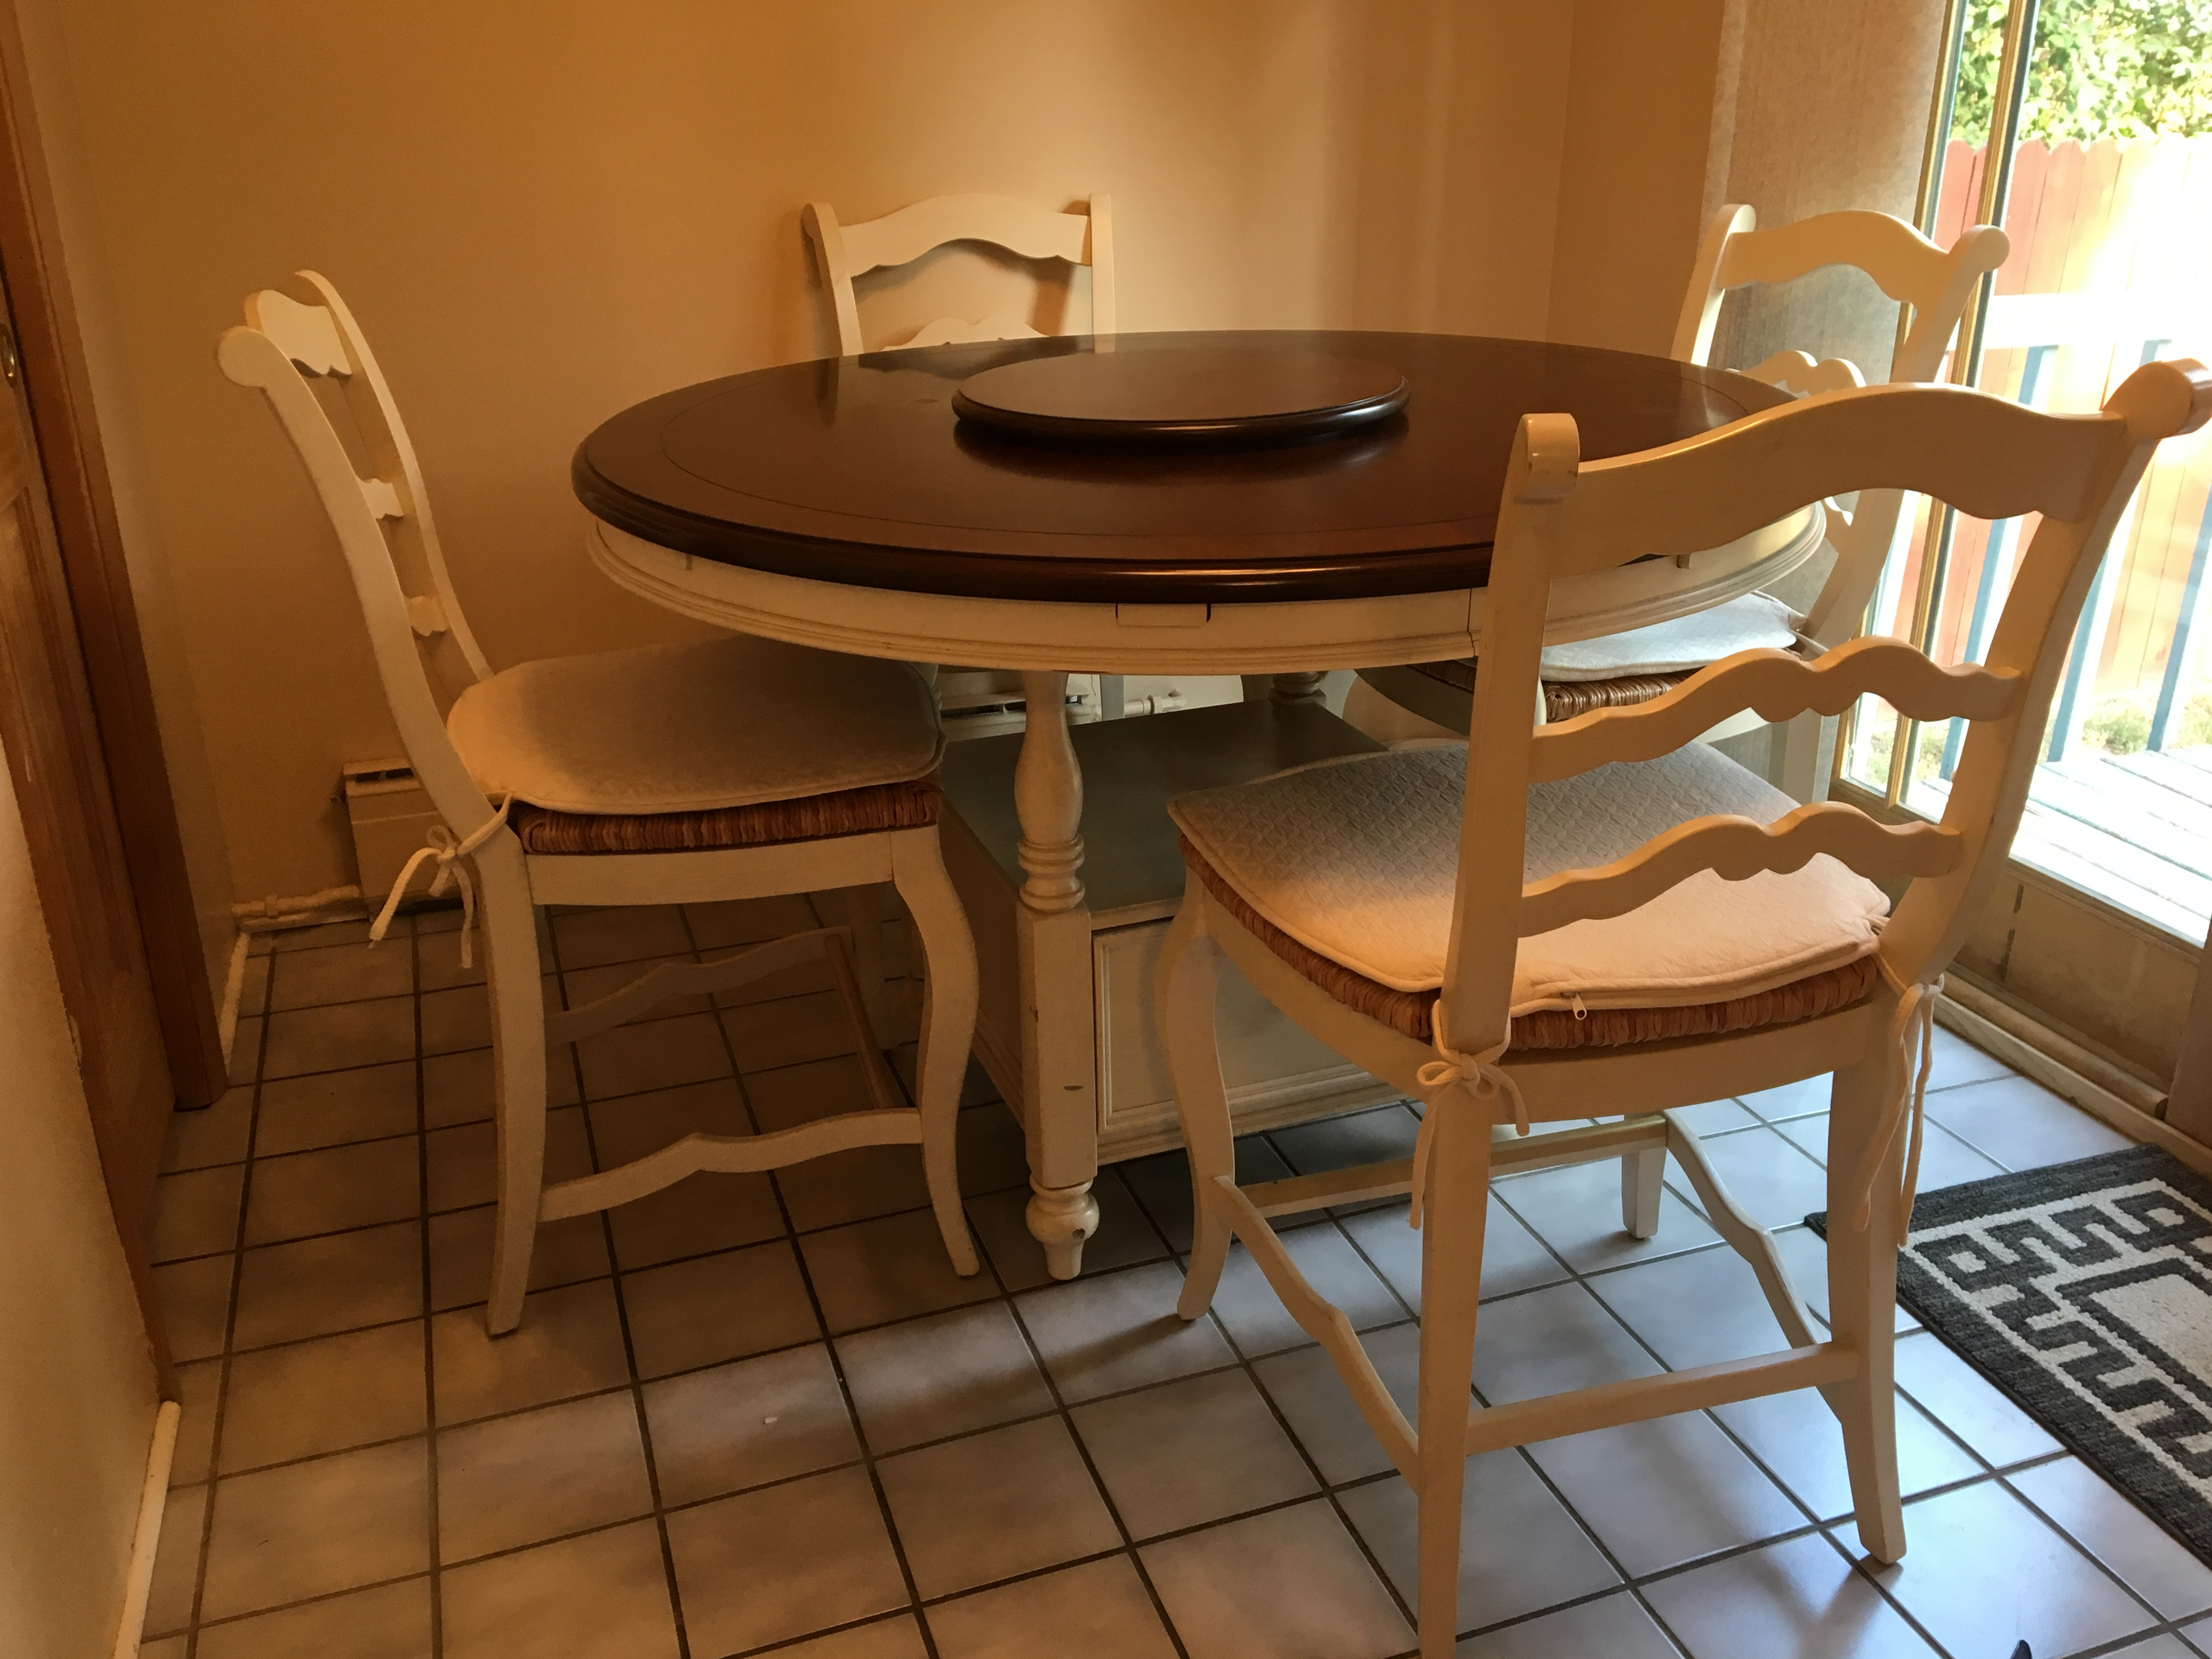 Farmhouse Counter Height Table, leaves & 8 chairs